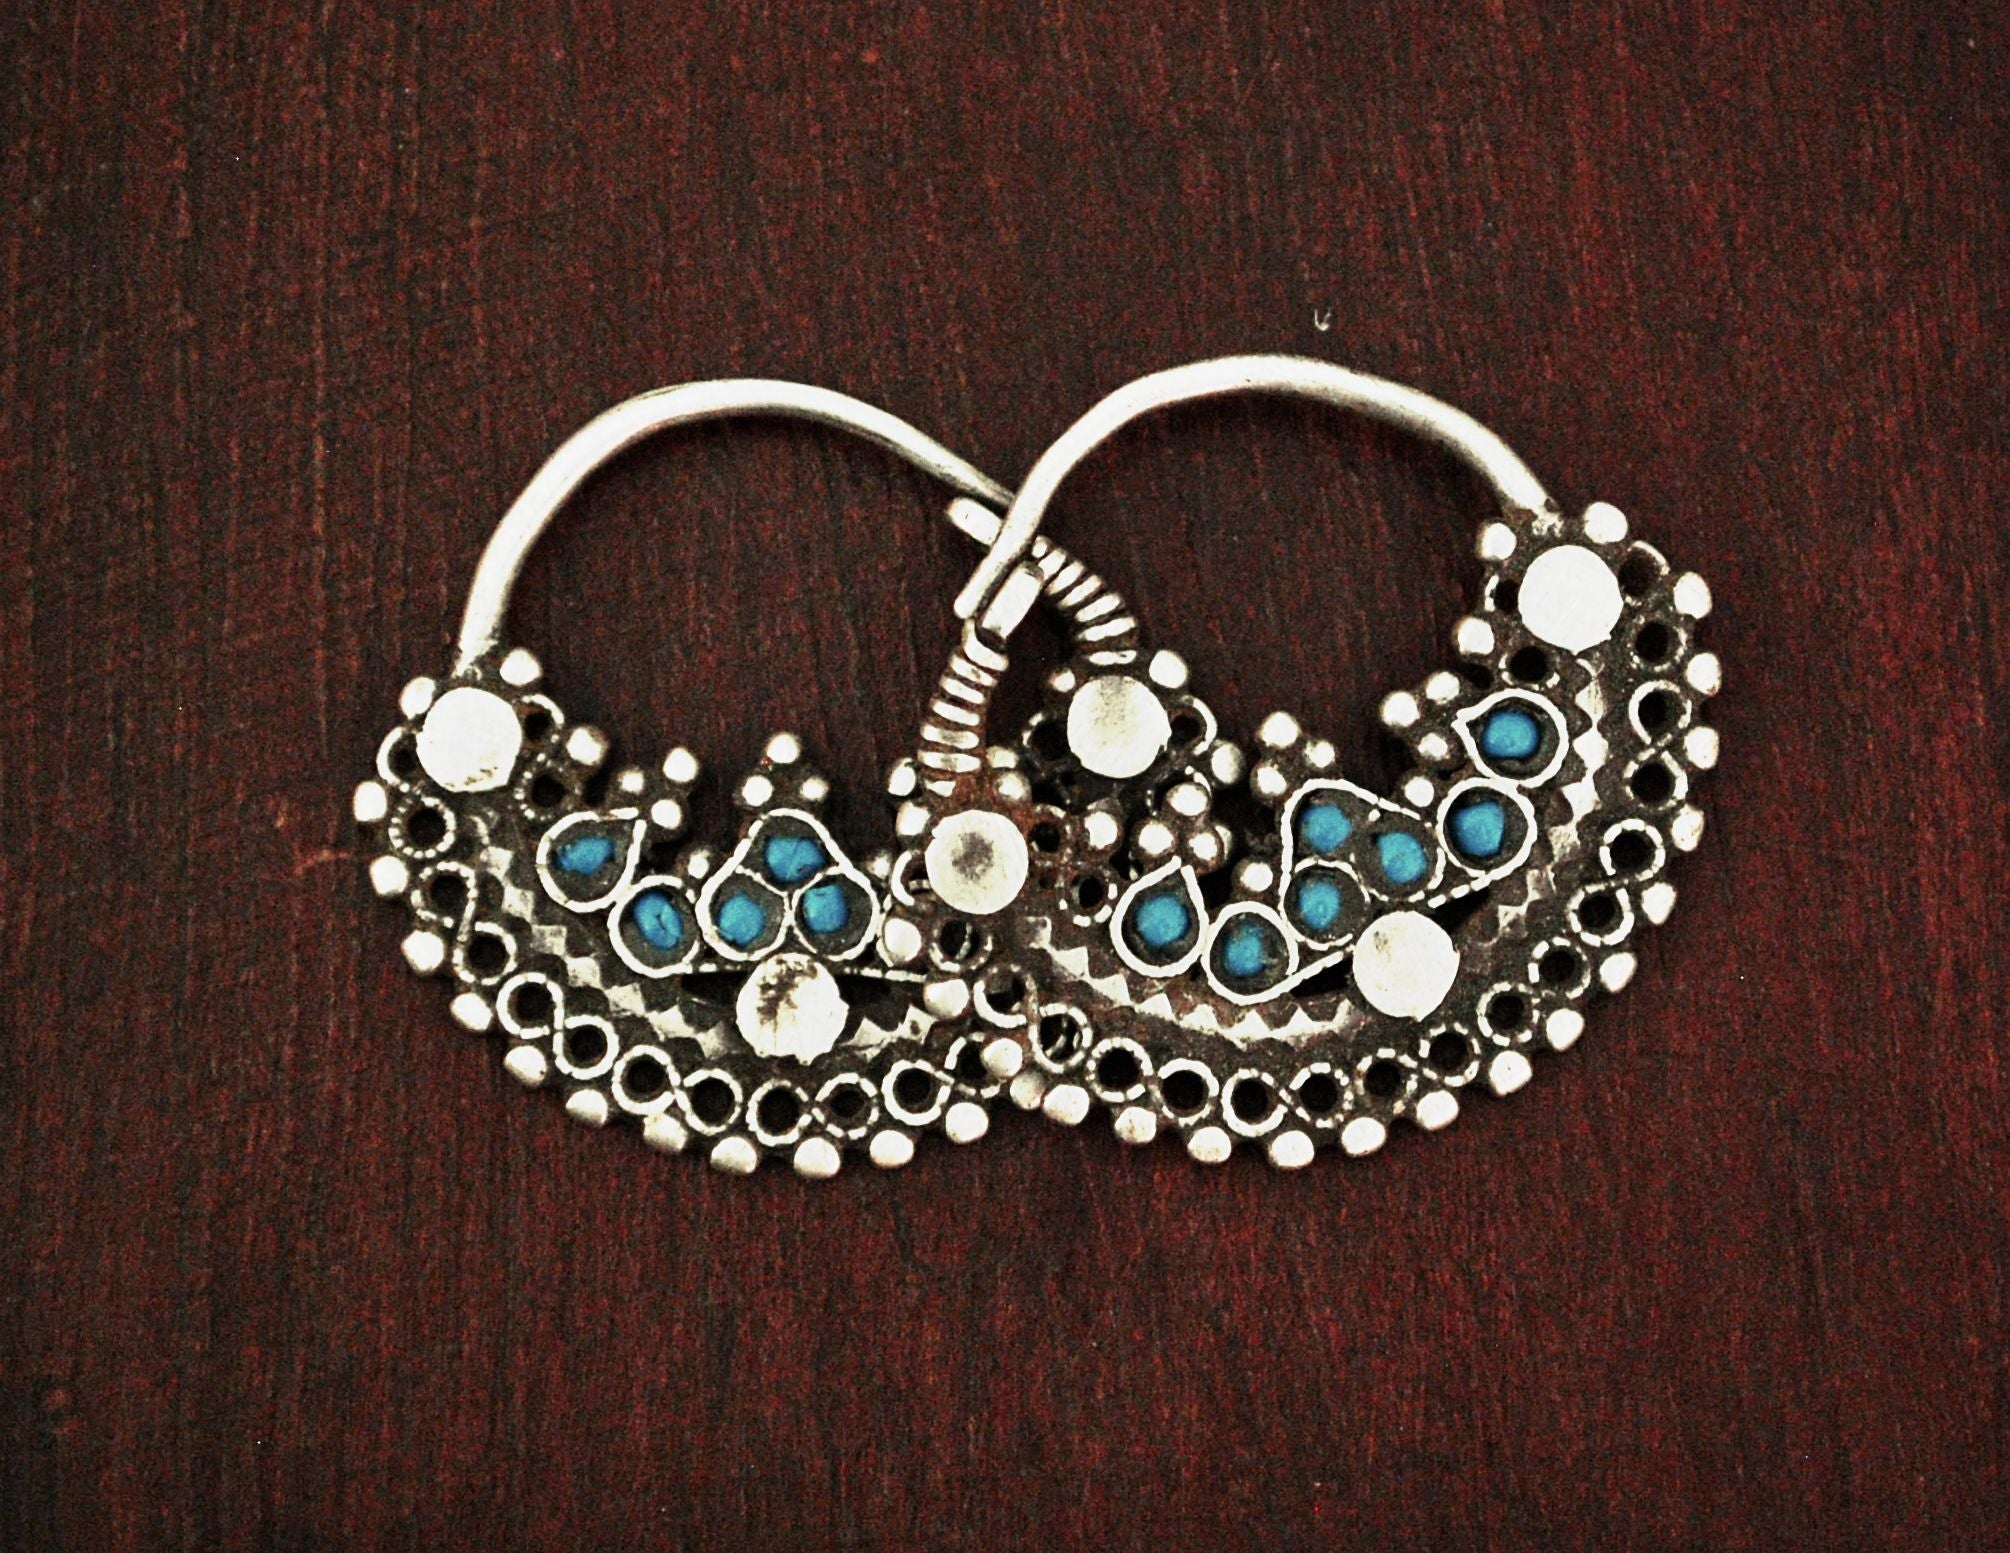 Antique Afghani Hoop Earrings with Turquoise